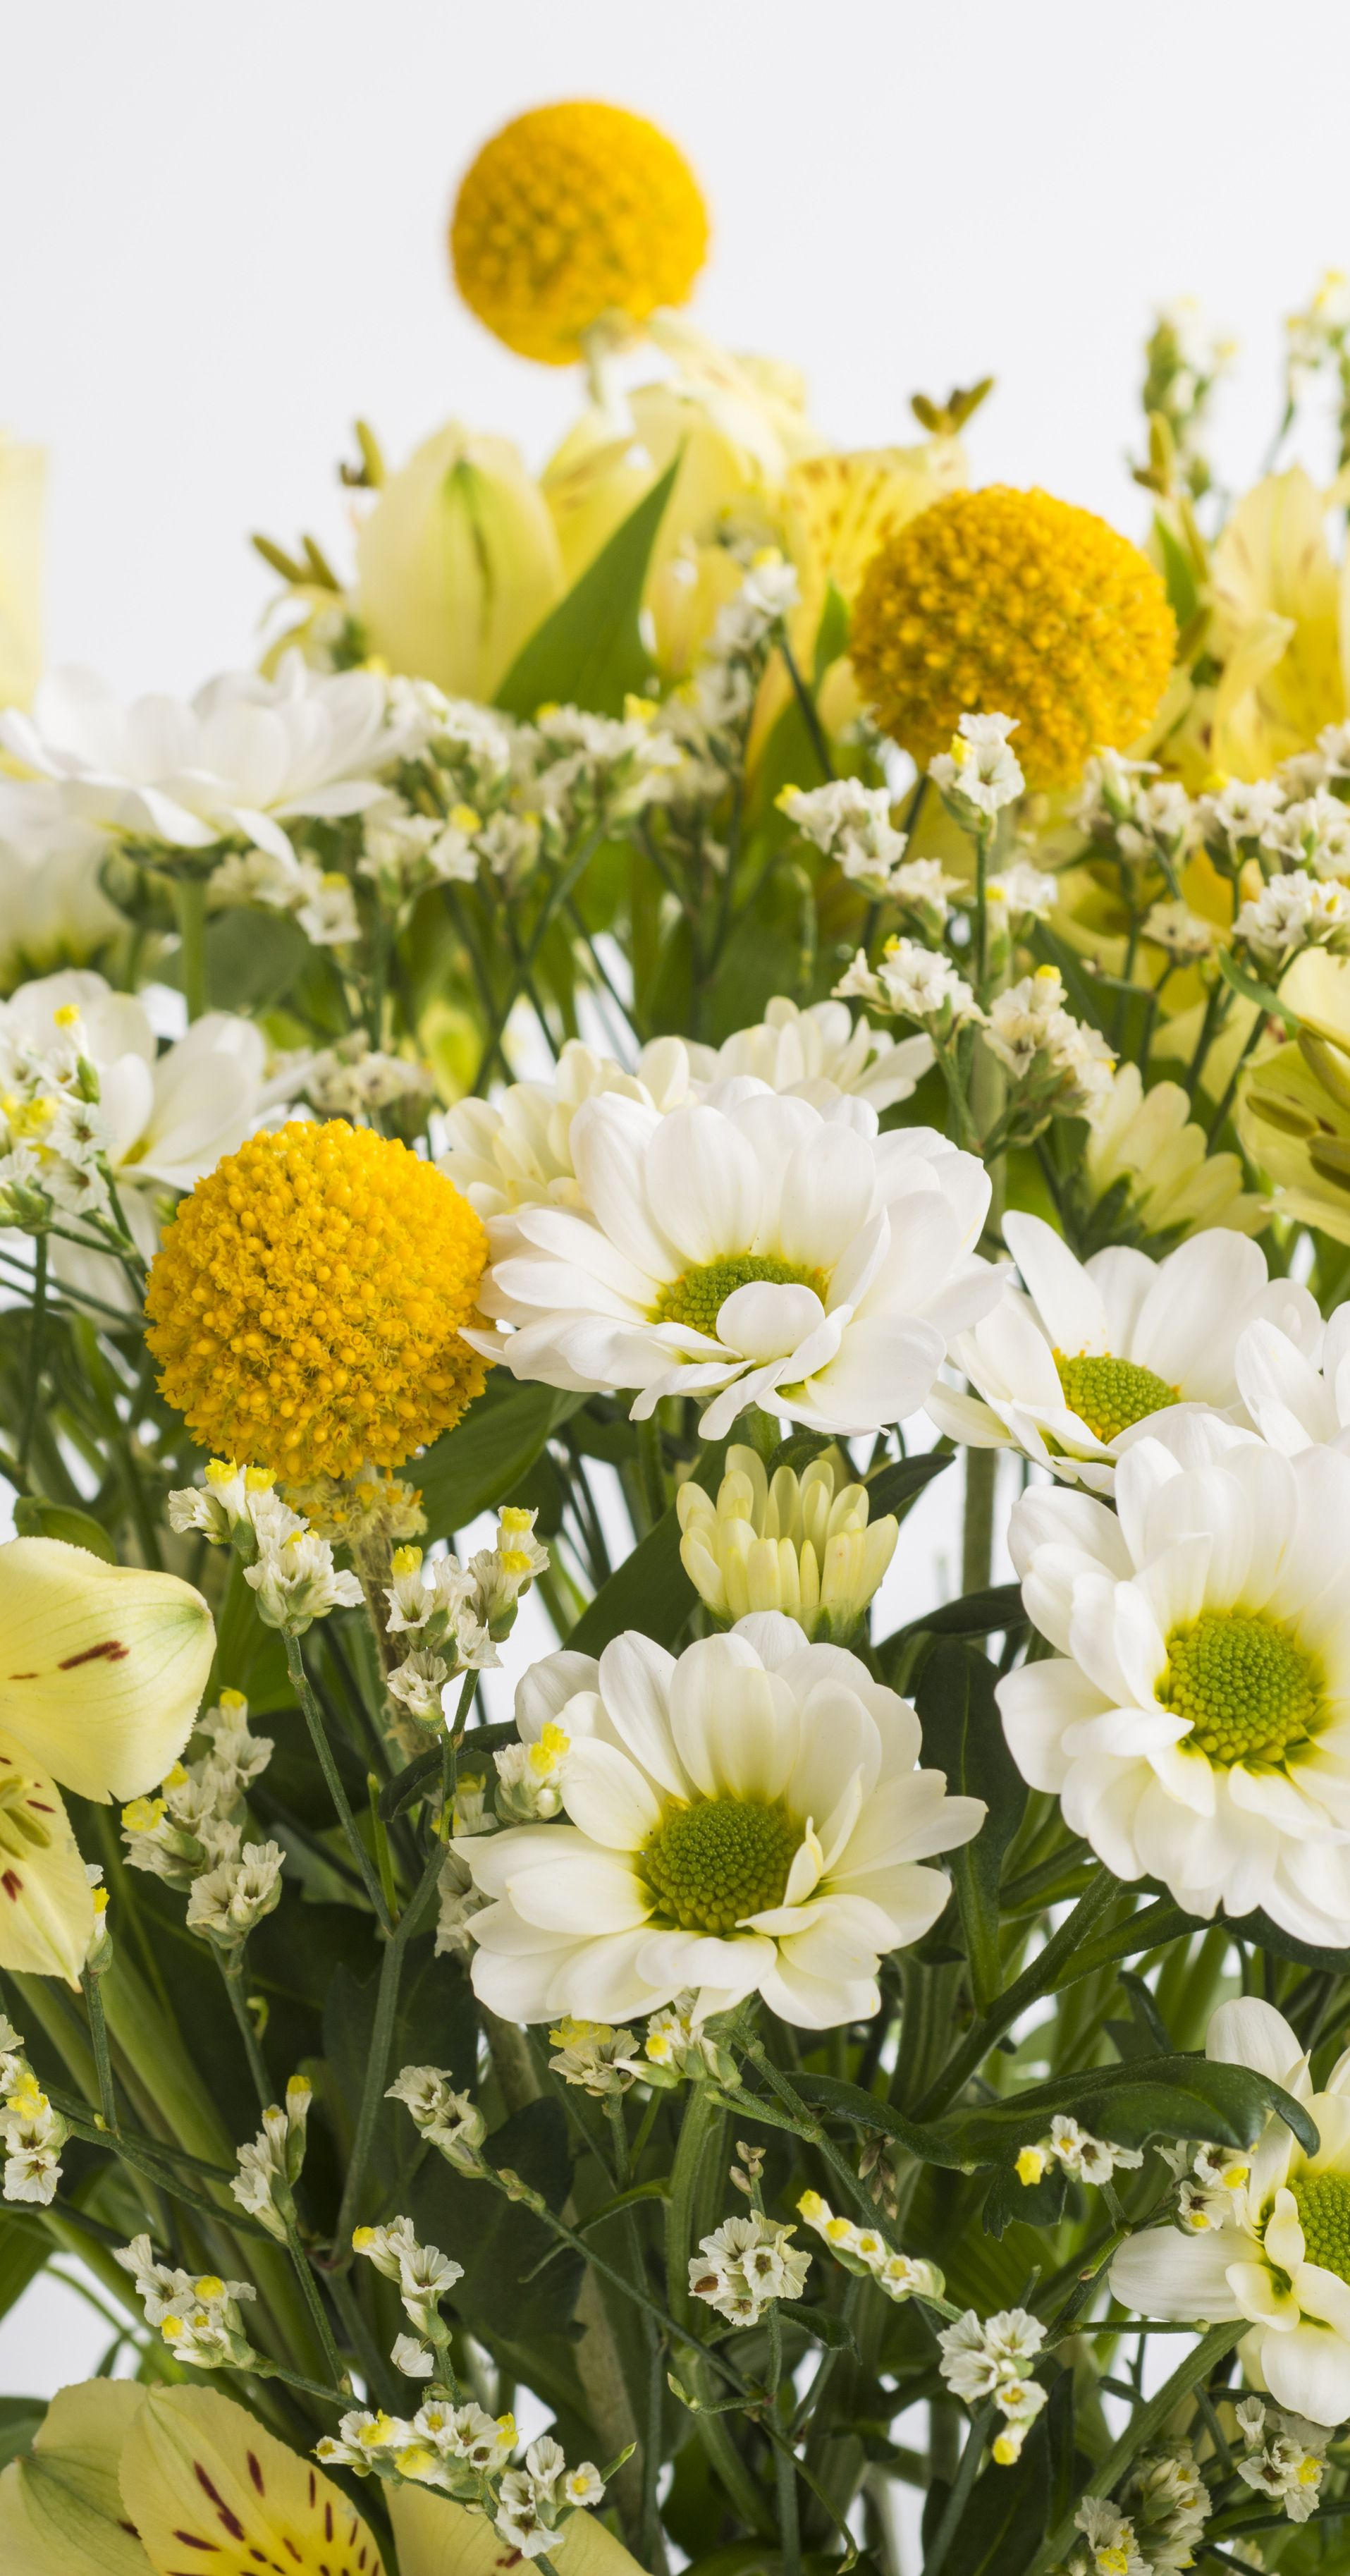 Craspedia Is The Star Of The Show In Our Charlie Bouquet Shop The Charlie For 20 With Free Next Day Letterbox Delivery F Bloom And Wild Flower Delivery Bloom